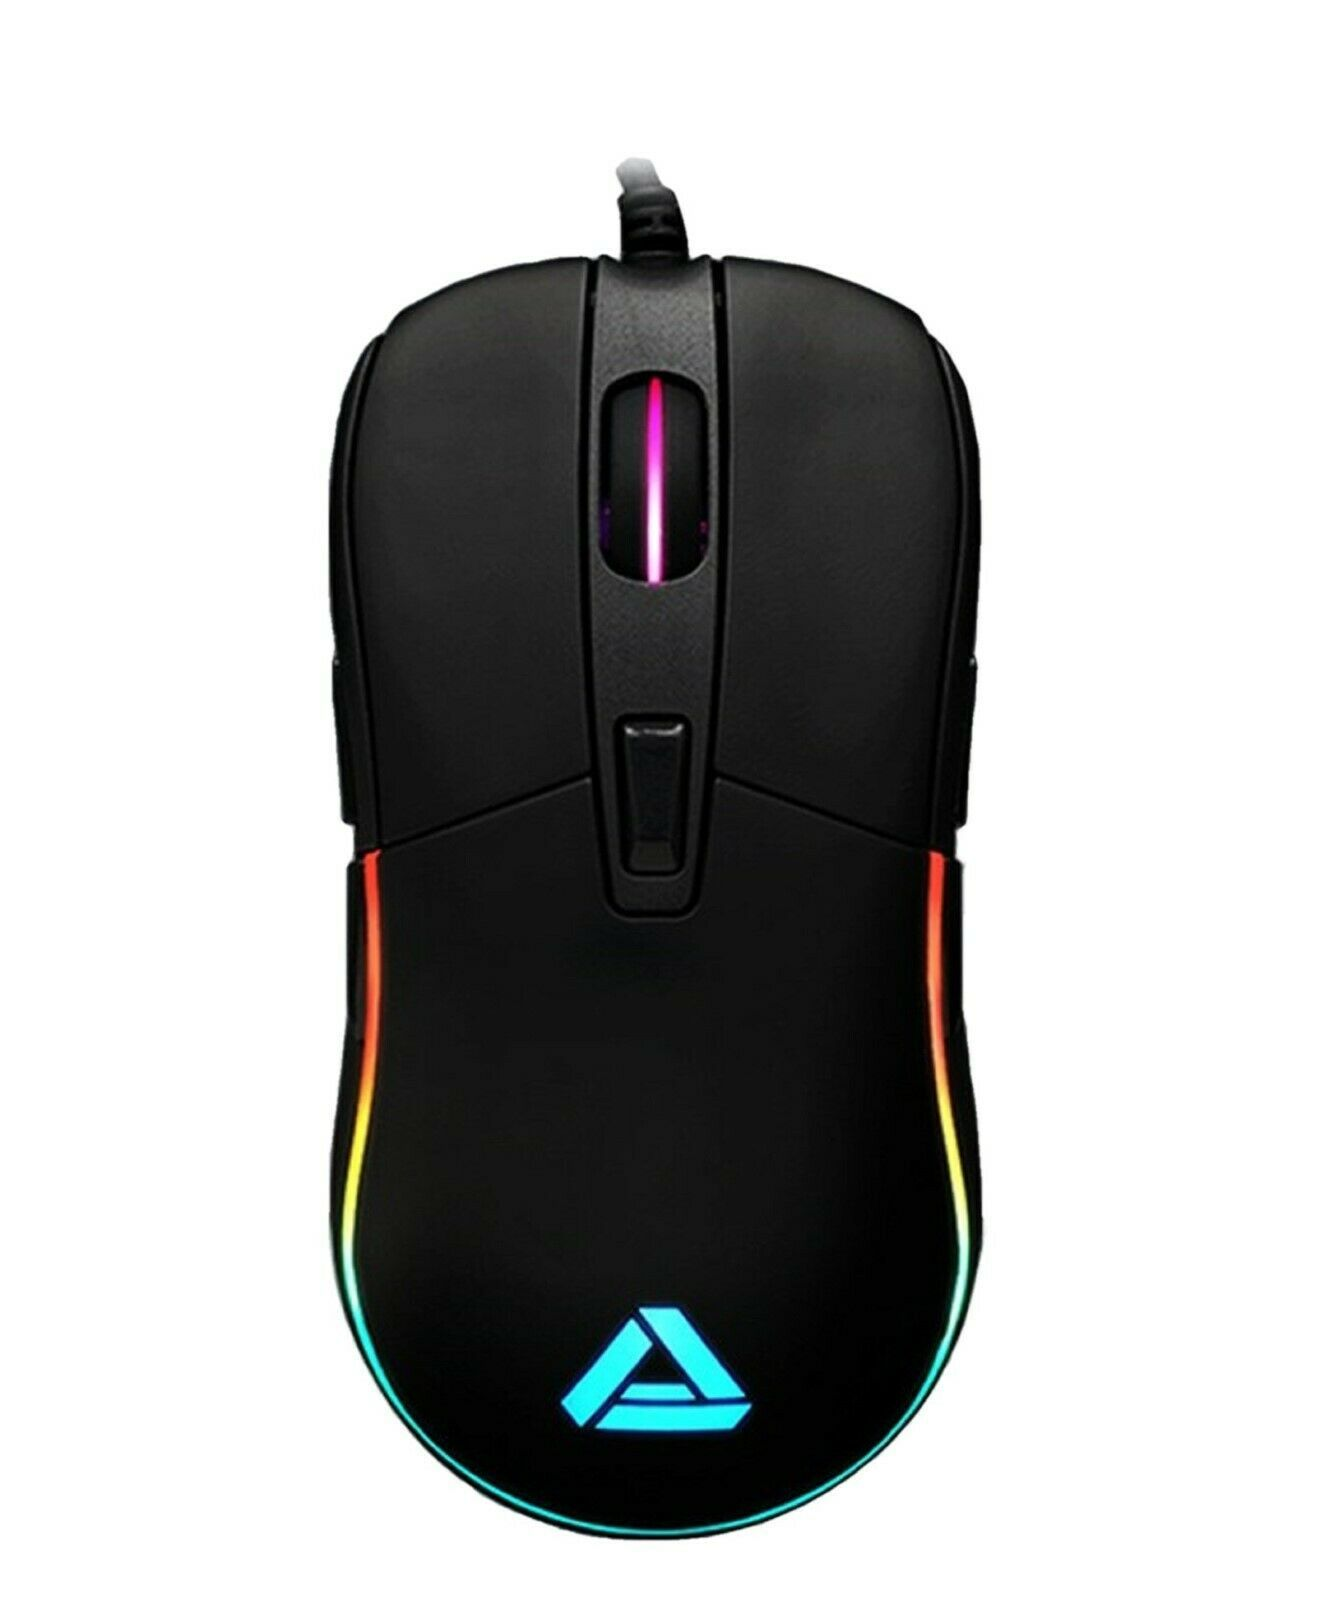 Apix GM003 USB Wired Gaming Mouse 12000DPI PMW3360 Sensor